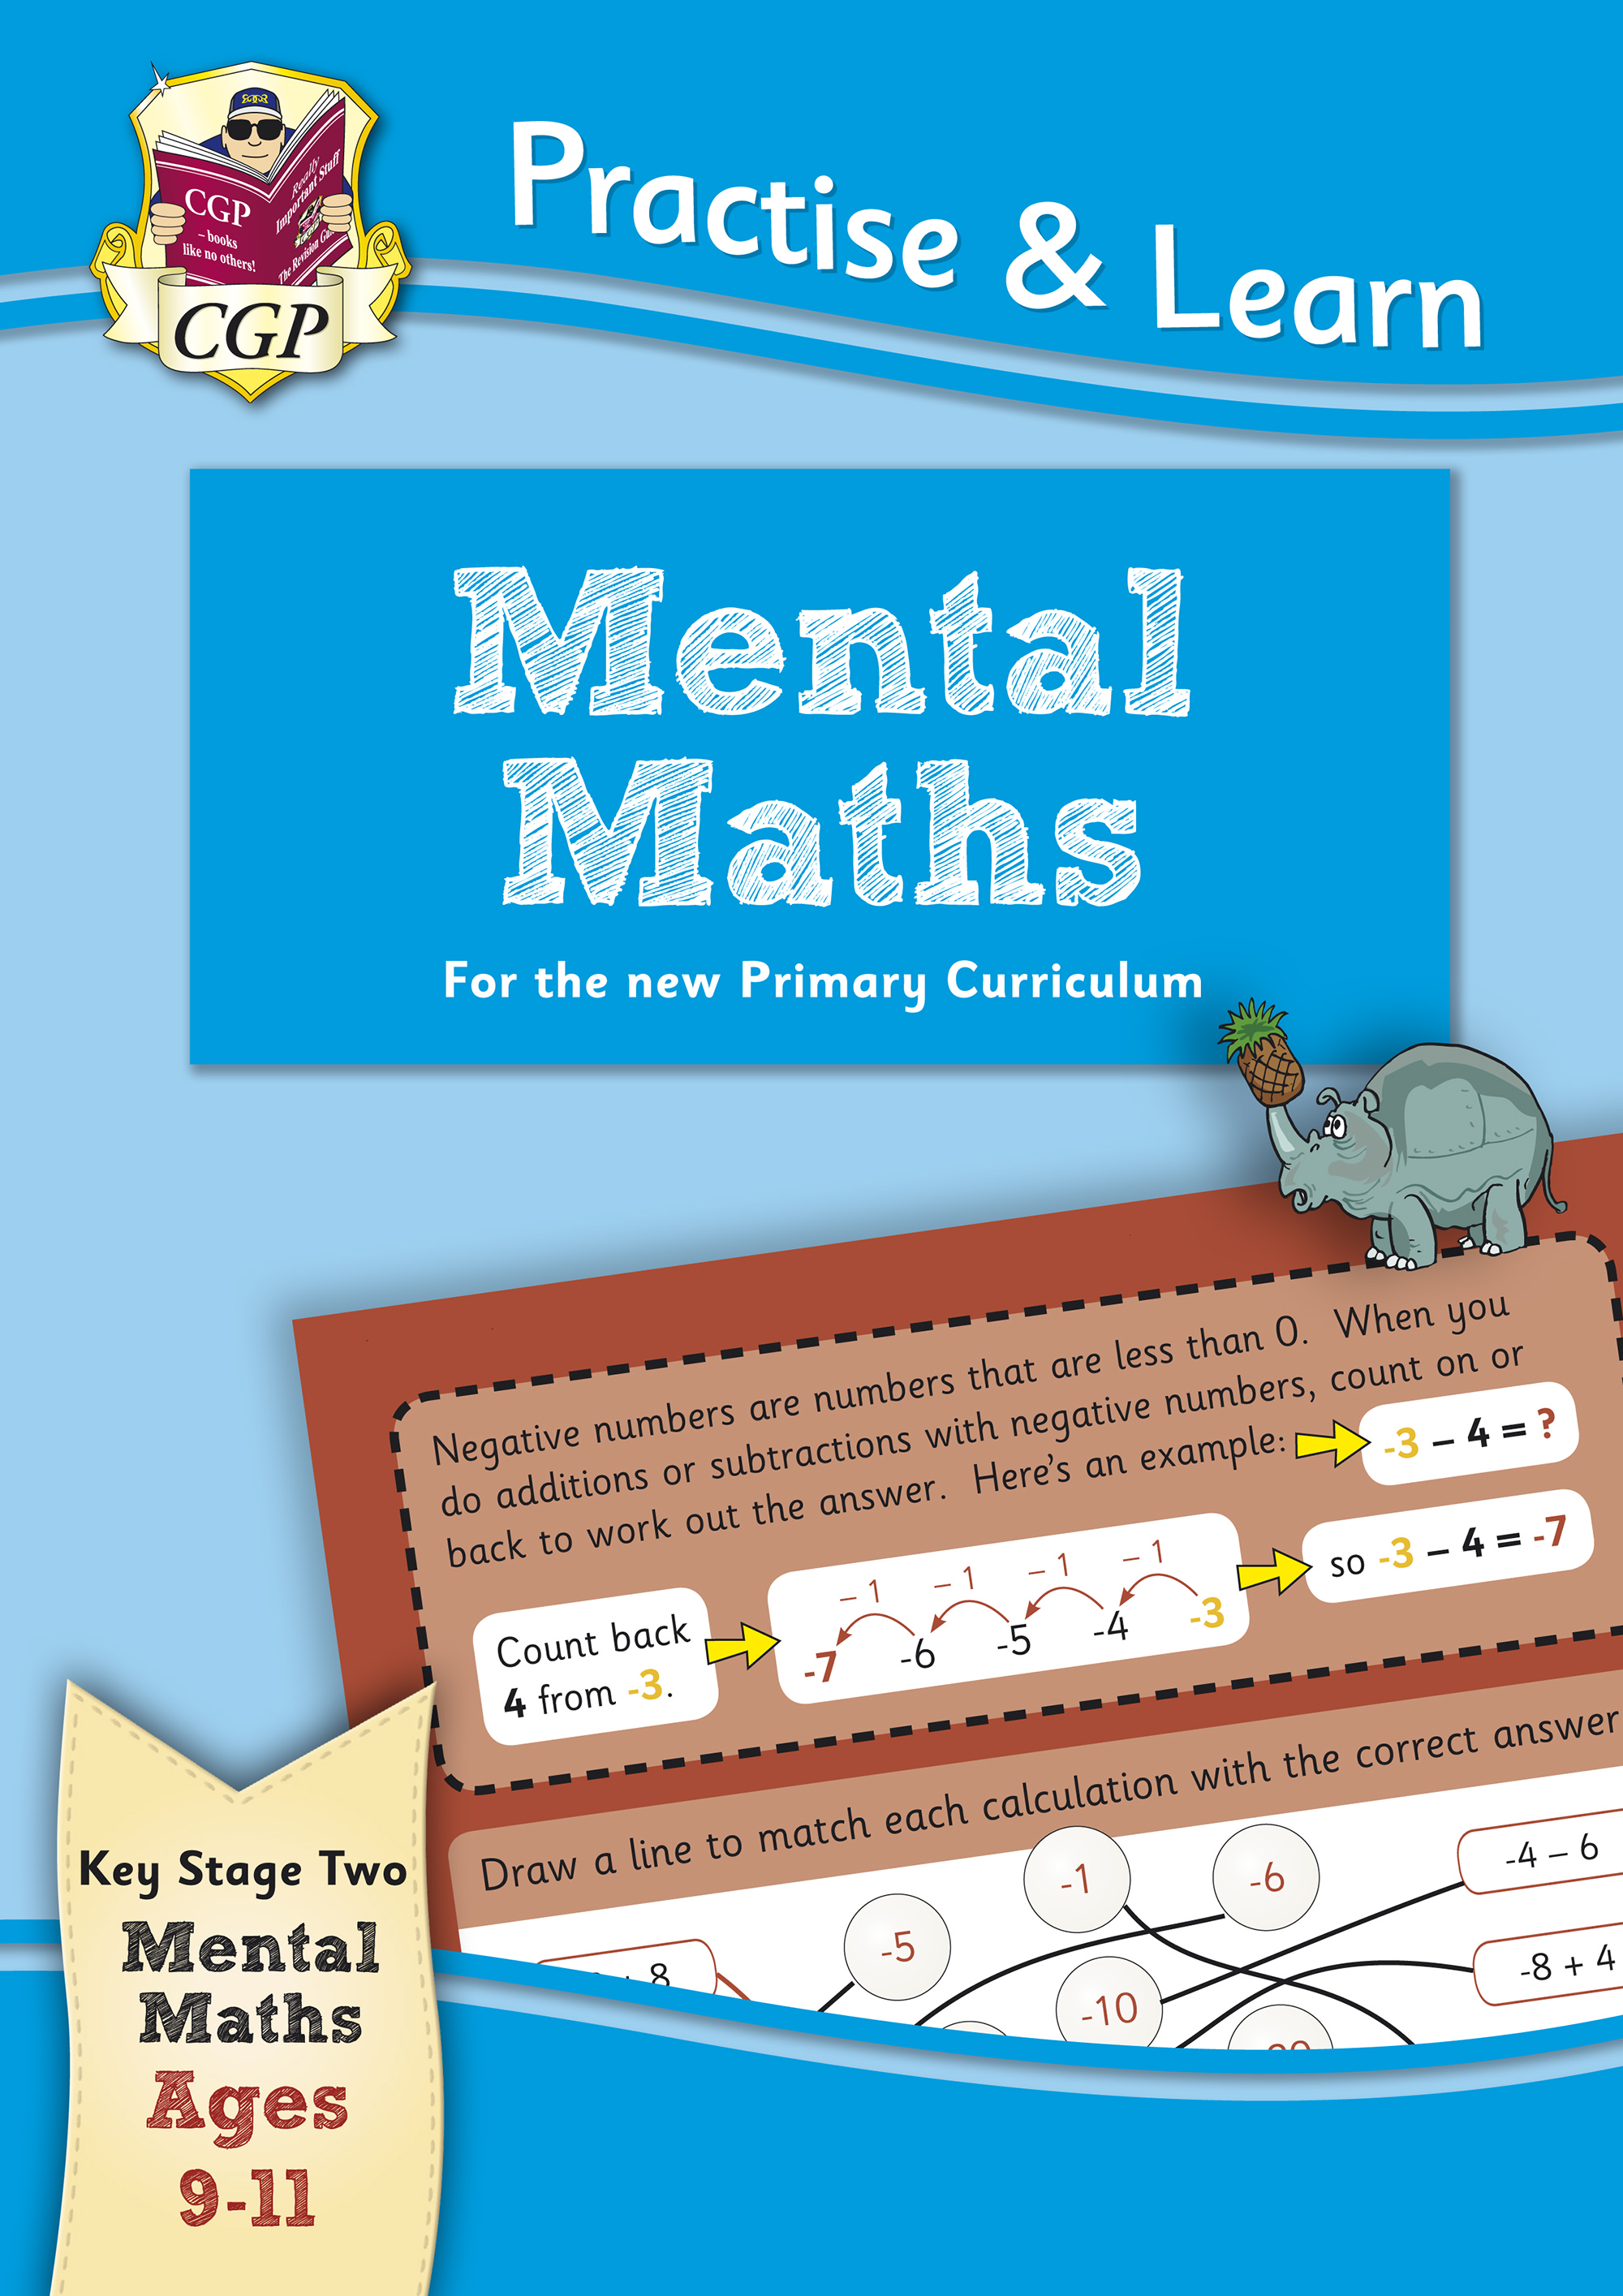 MP6MA22 - New Practise & Learn: Mental Maths for Ages 9-11